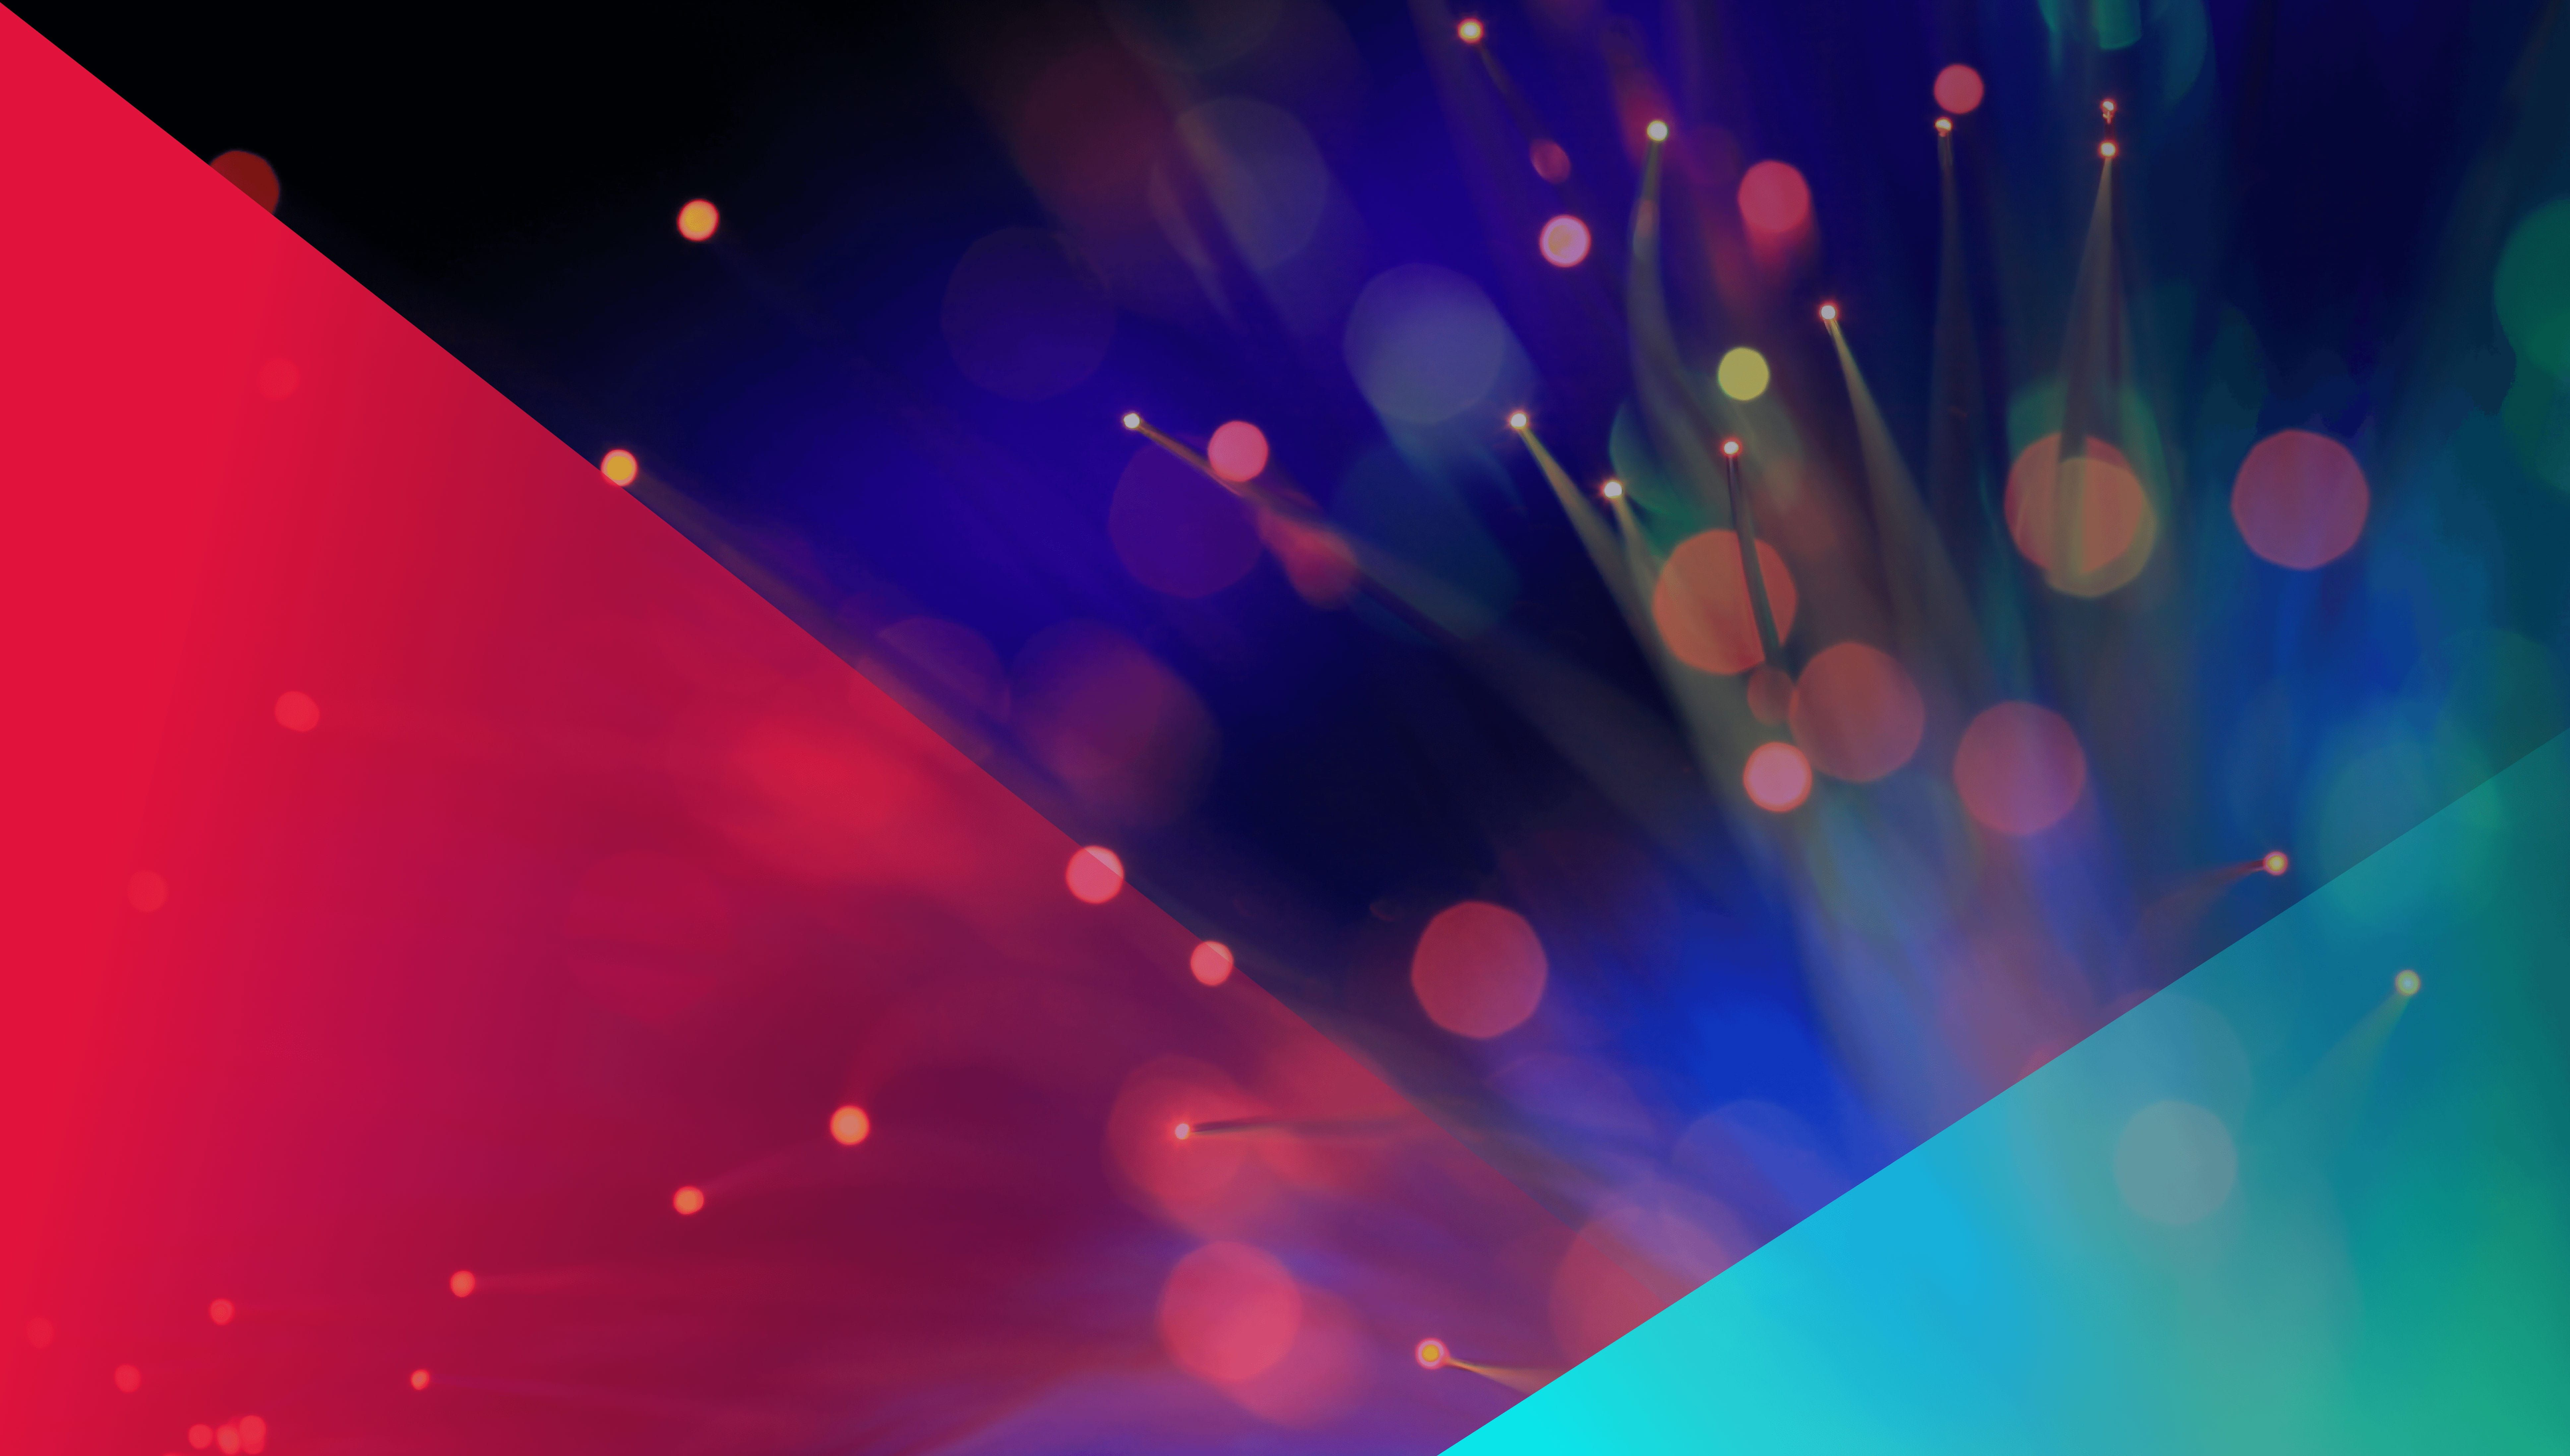 Cute Godly Wallpapers Colorful Blurred Boken Lights 8k Abstract Desktop